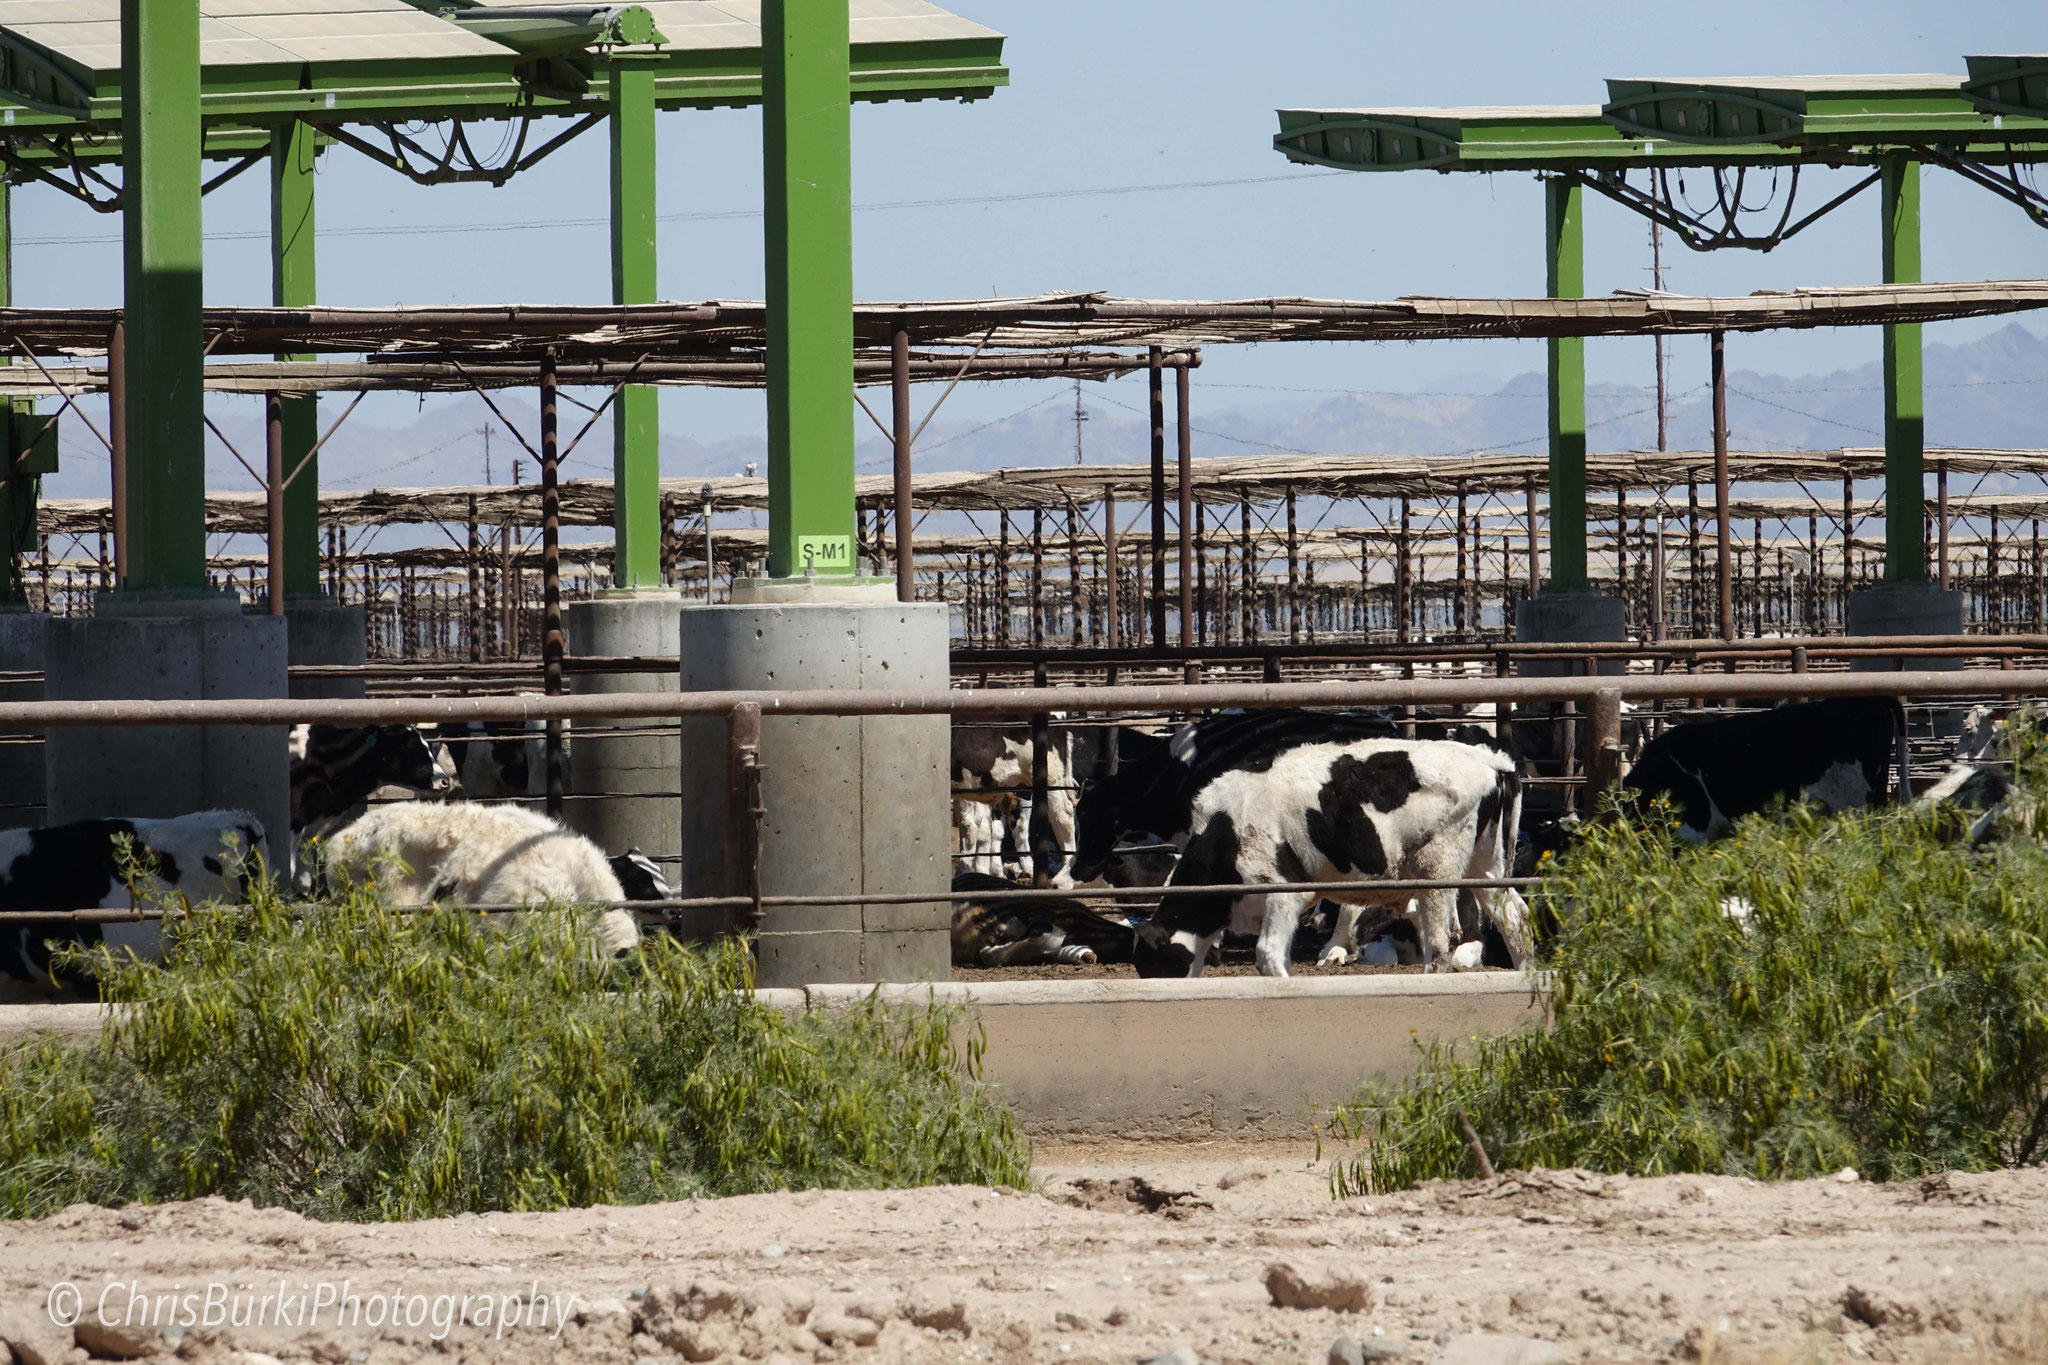 for supply of livestock